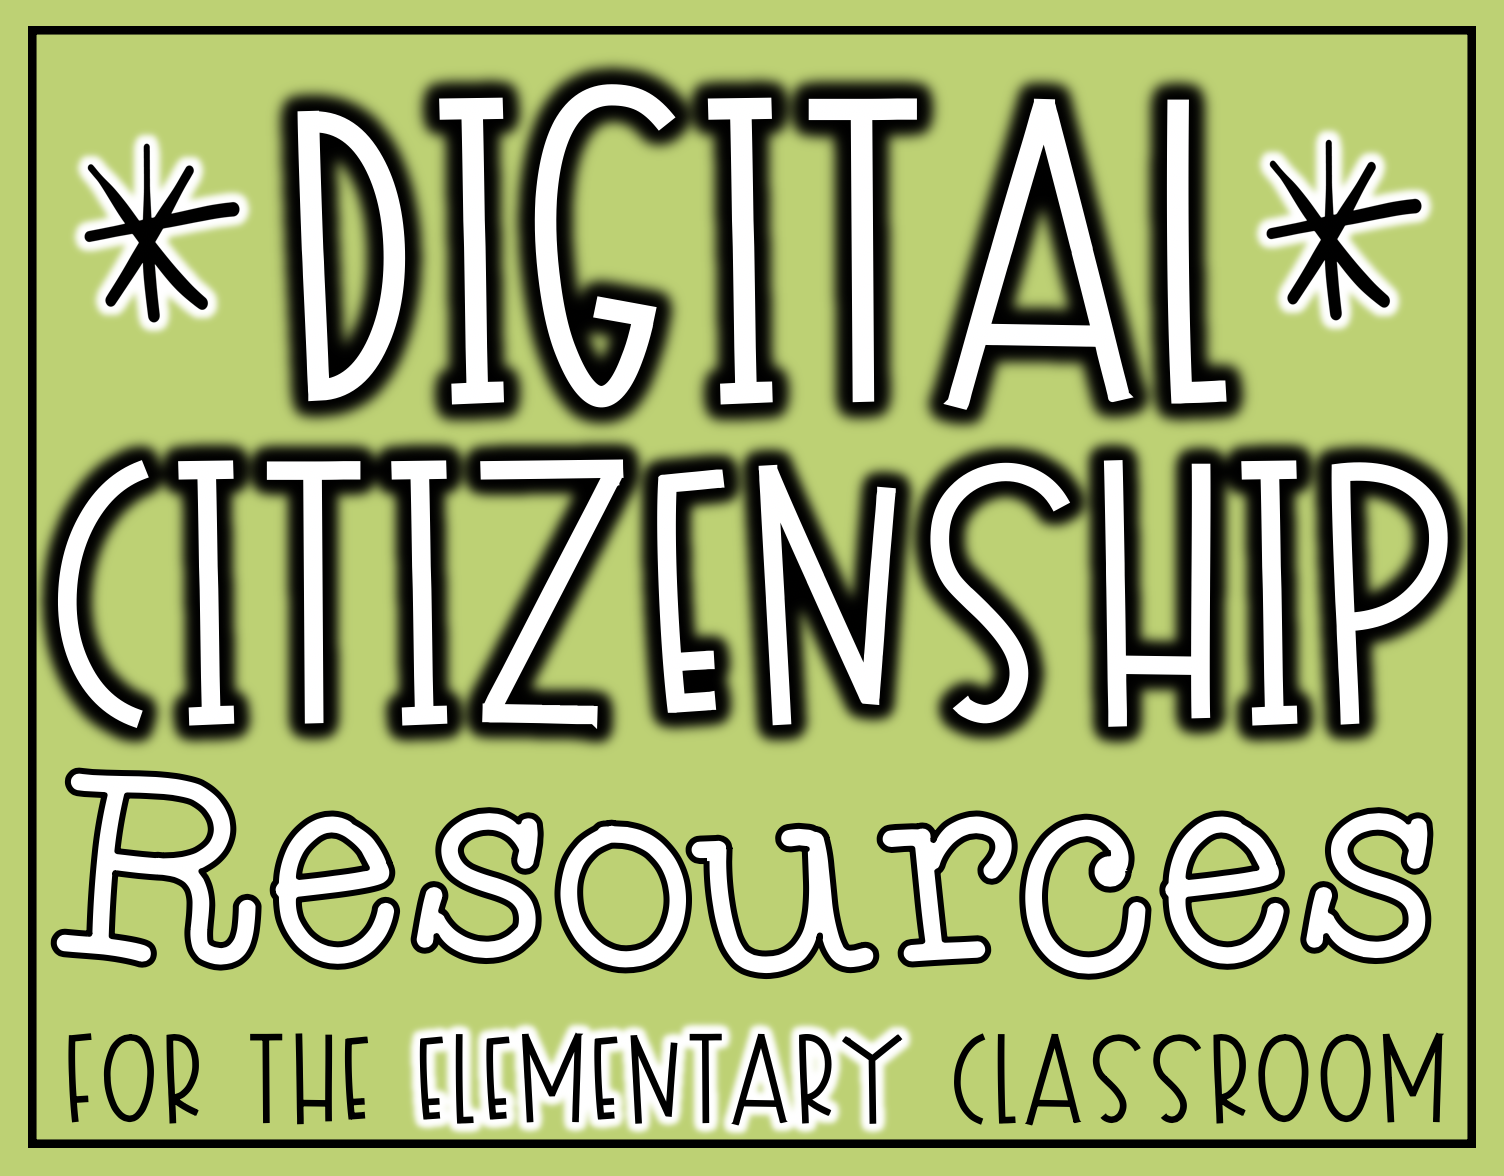 small resolution of Digital Citizenship Resources for the Elementary Classroom   The Techie  Teacher®